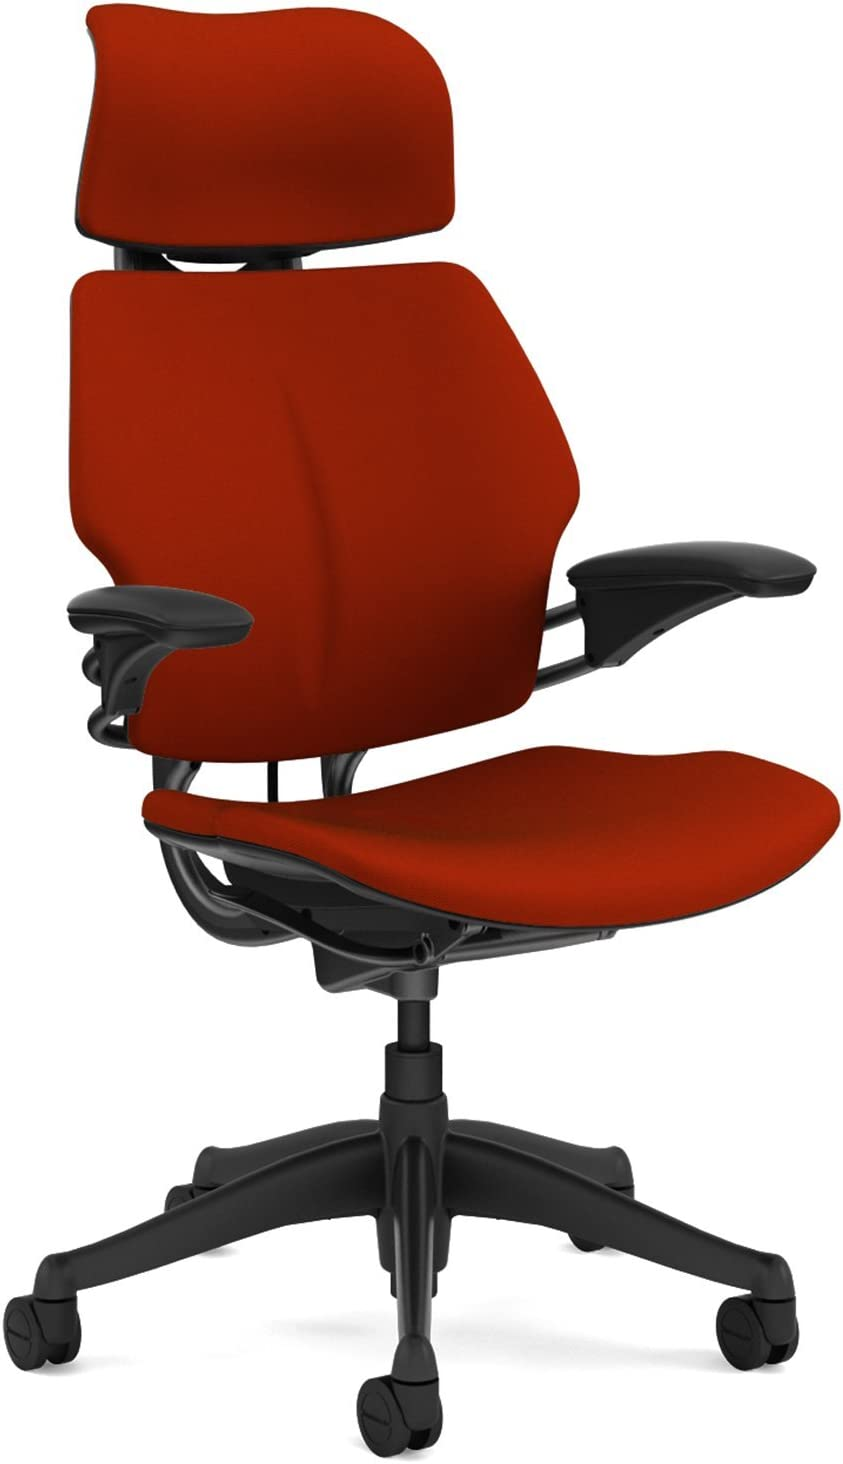 Humanscale Freedom Office Desk Chair with Headrest - Standard Height Adjustable Duron Arms - Graphite Frame Red Fabric - Soft Hard Floor Casters